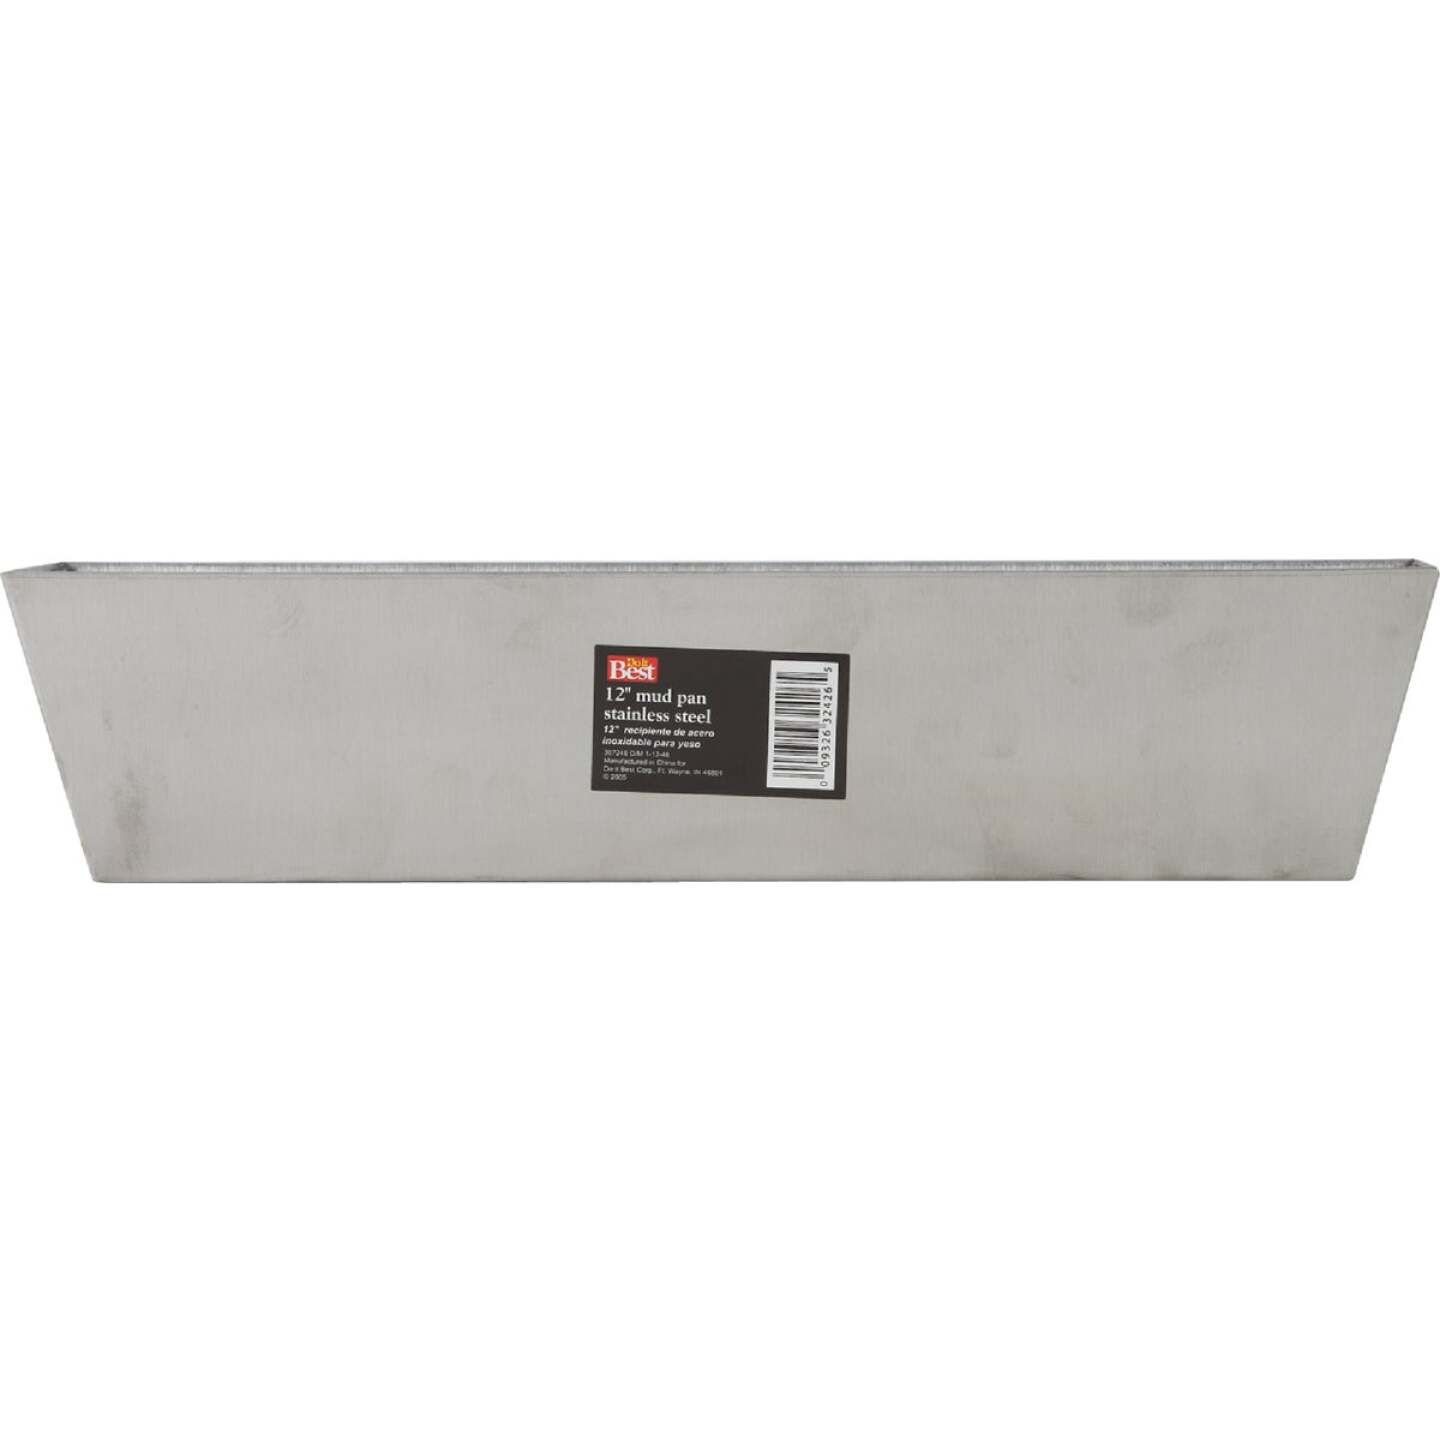 Do it Best 12 In. Stainless Steel Mud Pan Image 2